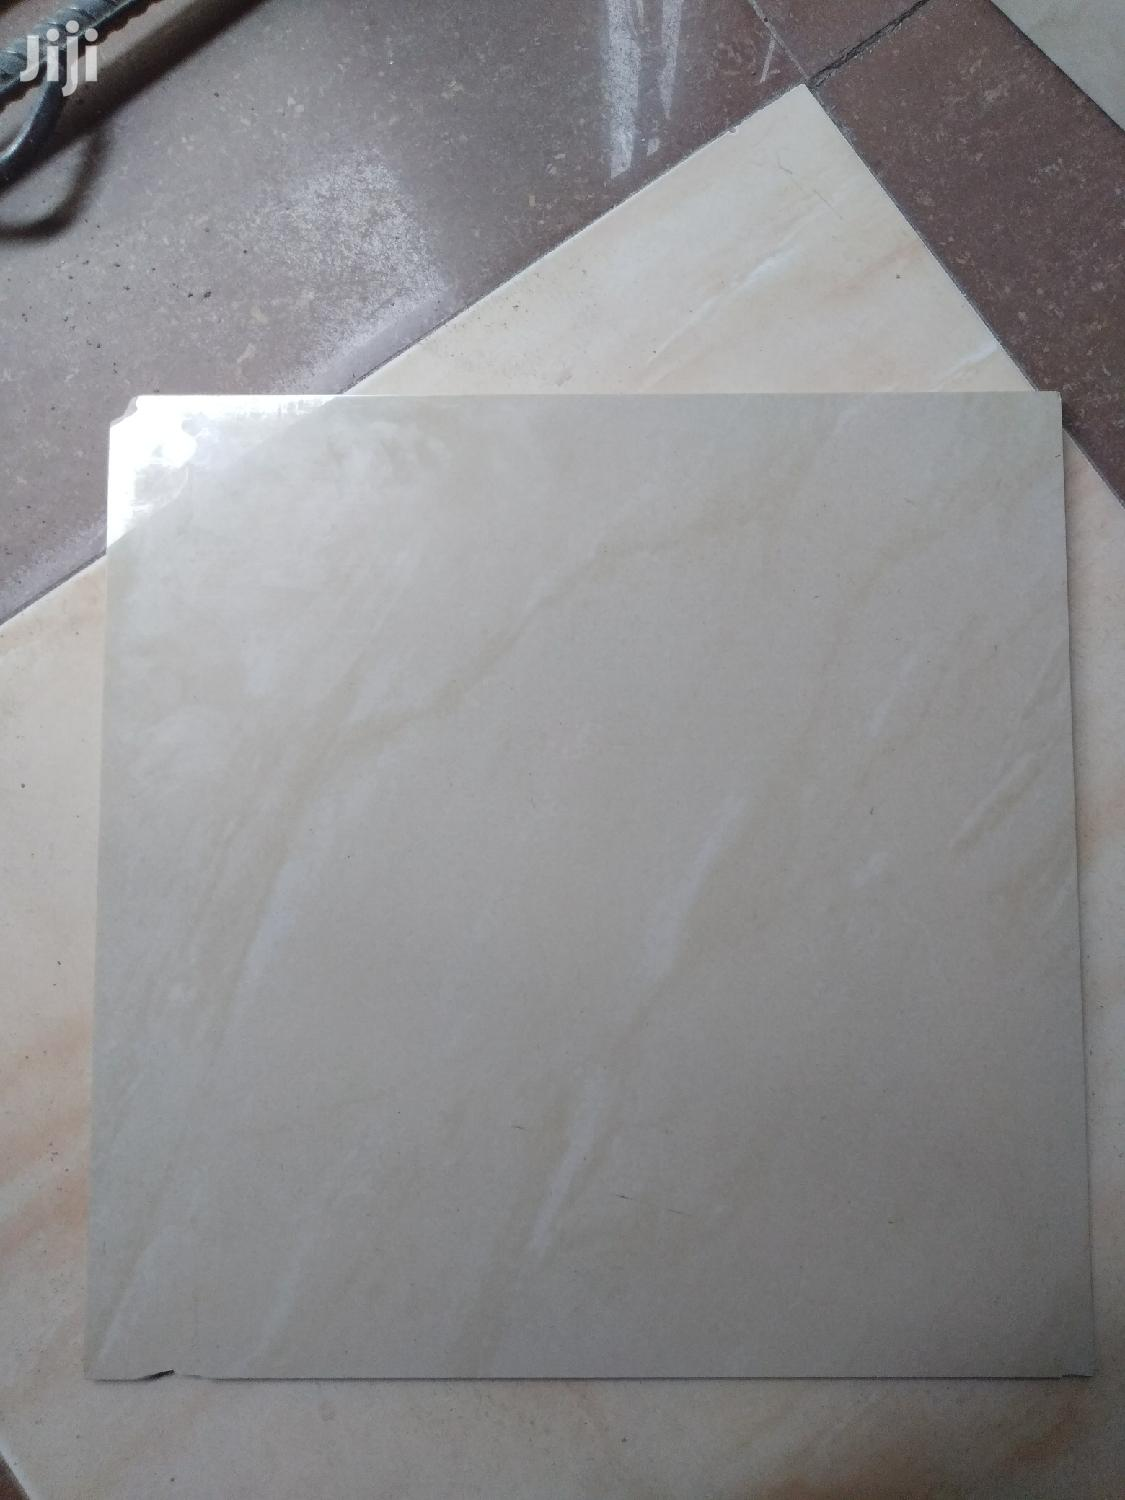 40 By 40 Glaze Tiles For Room   China Glaze Tiles   Room Tiles   Building Materials for sale in Orile, Lagos State, Nigeria